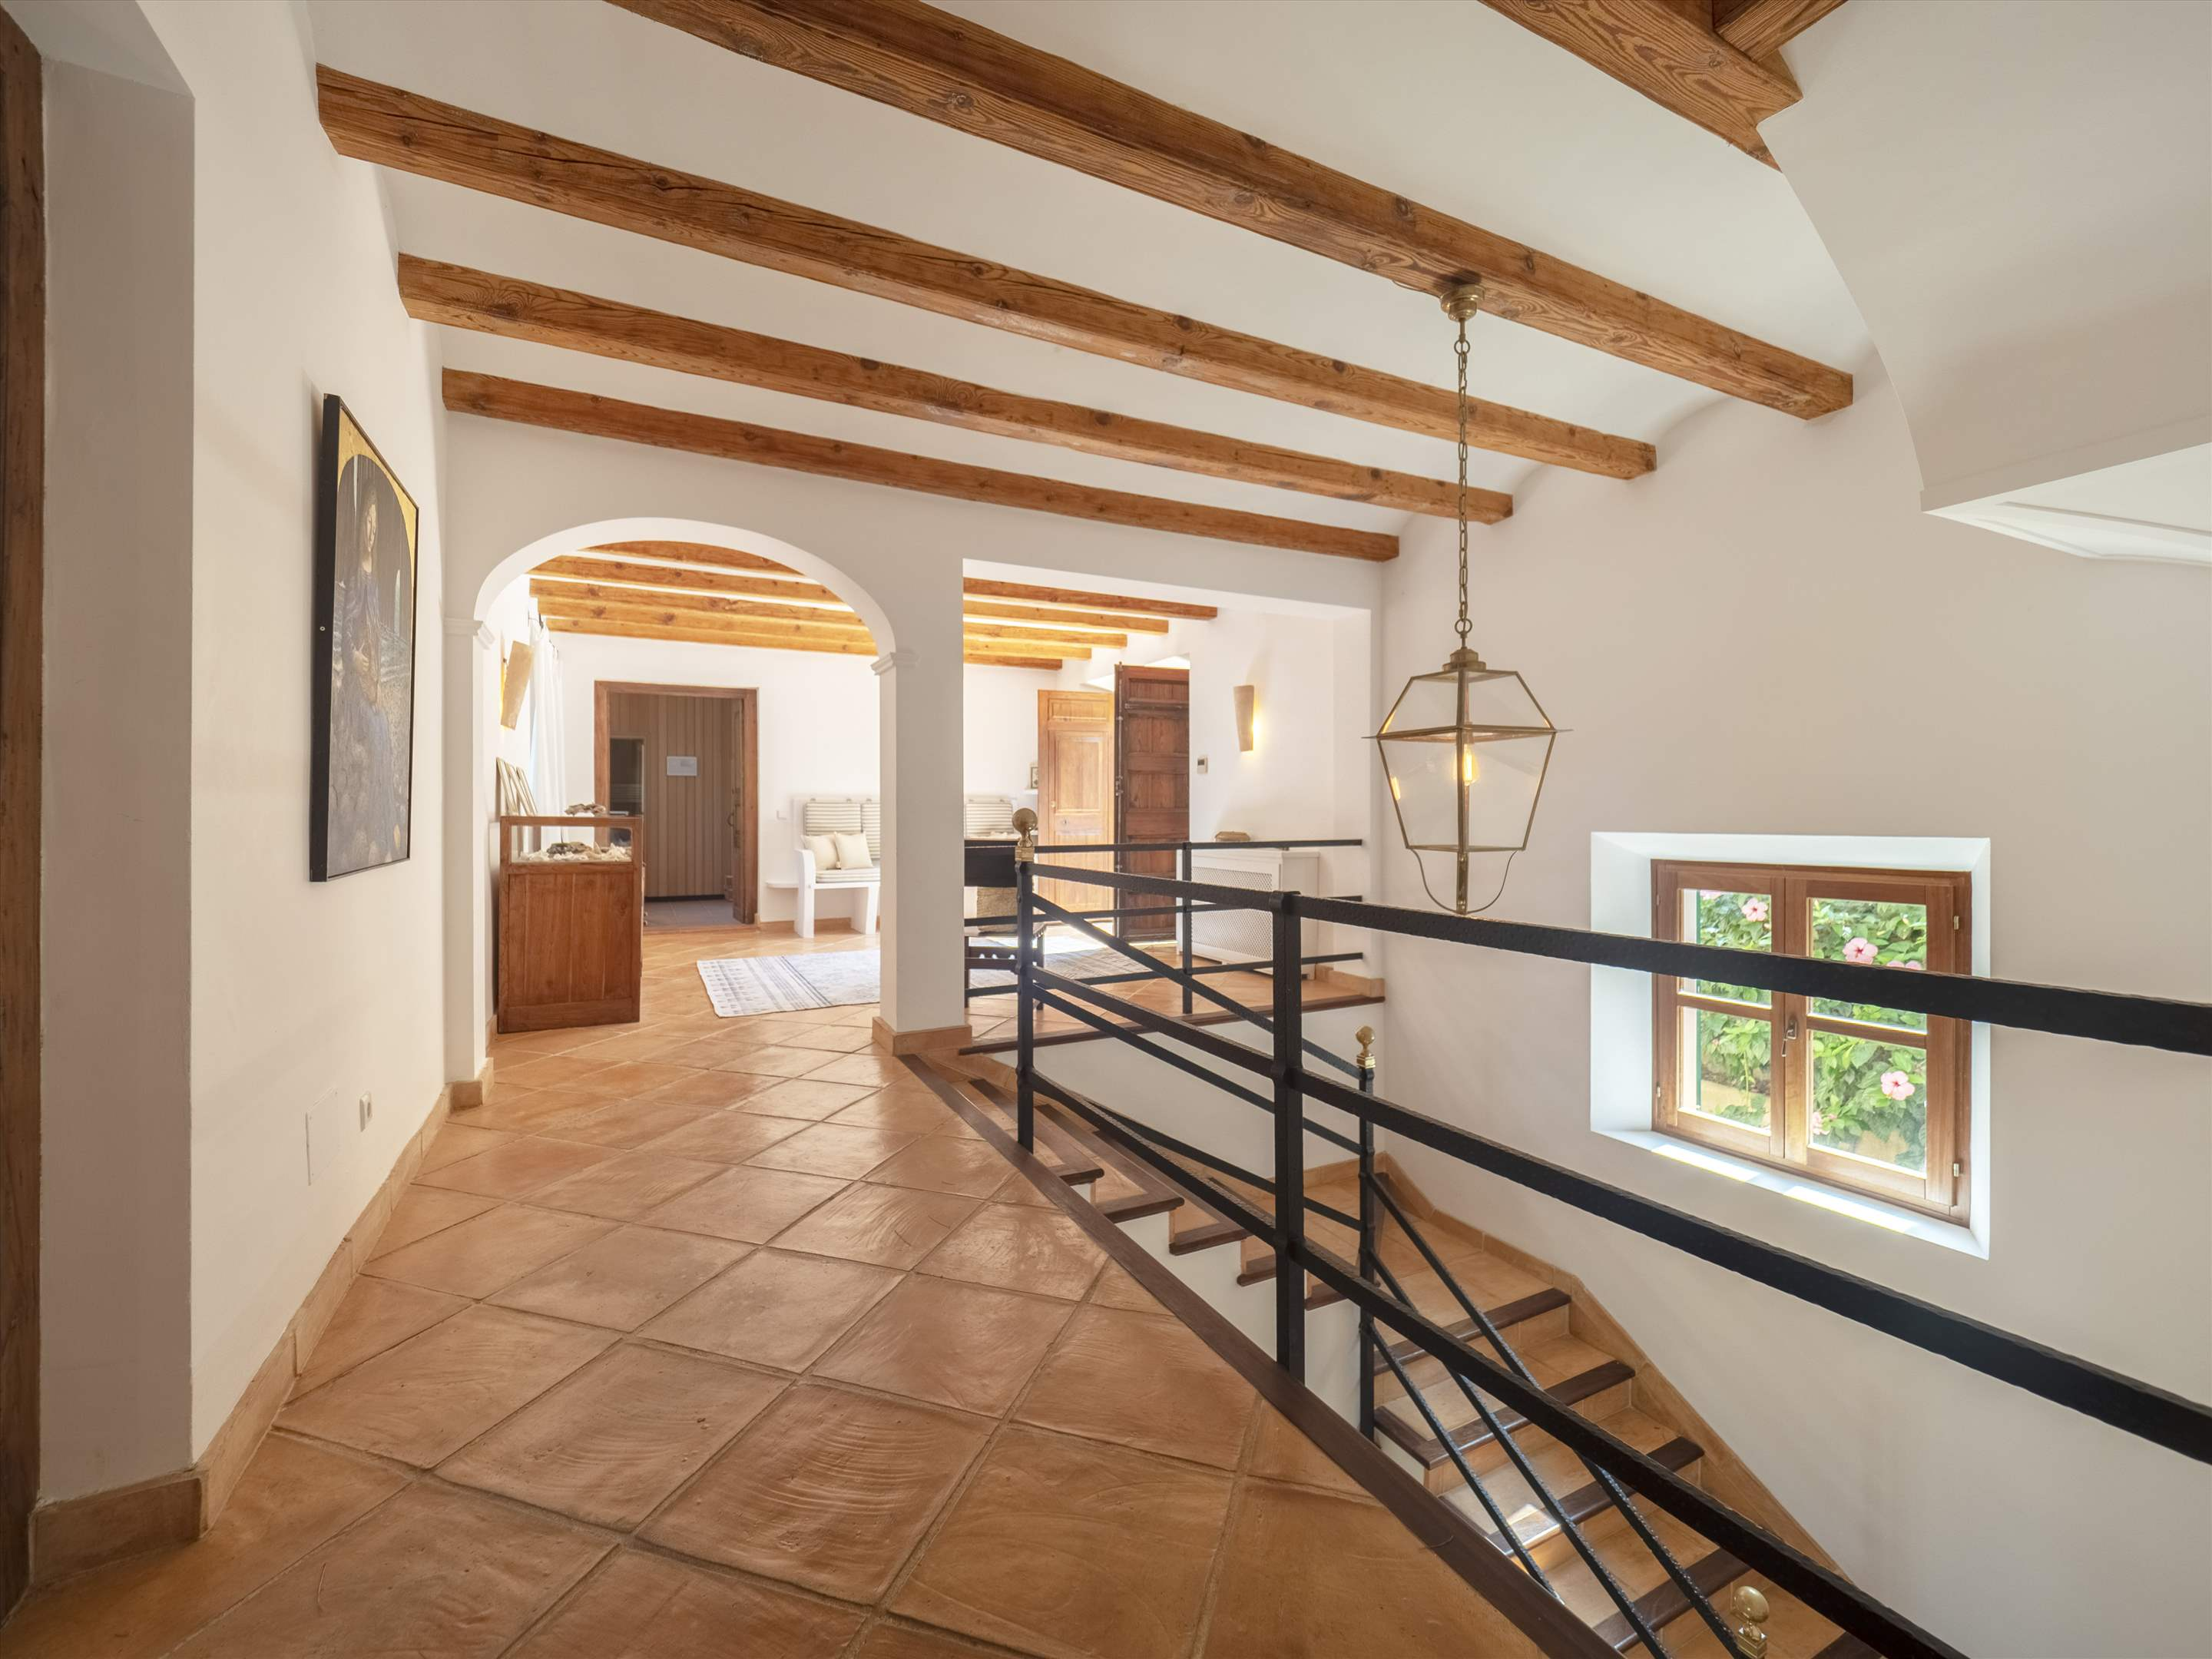 Sa Cala, 4 bedroom villa in Soller & Deia, Majorca Photo #20